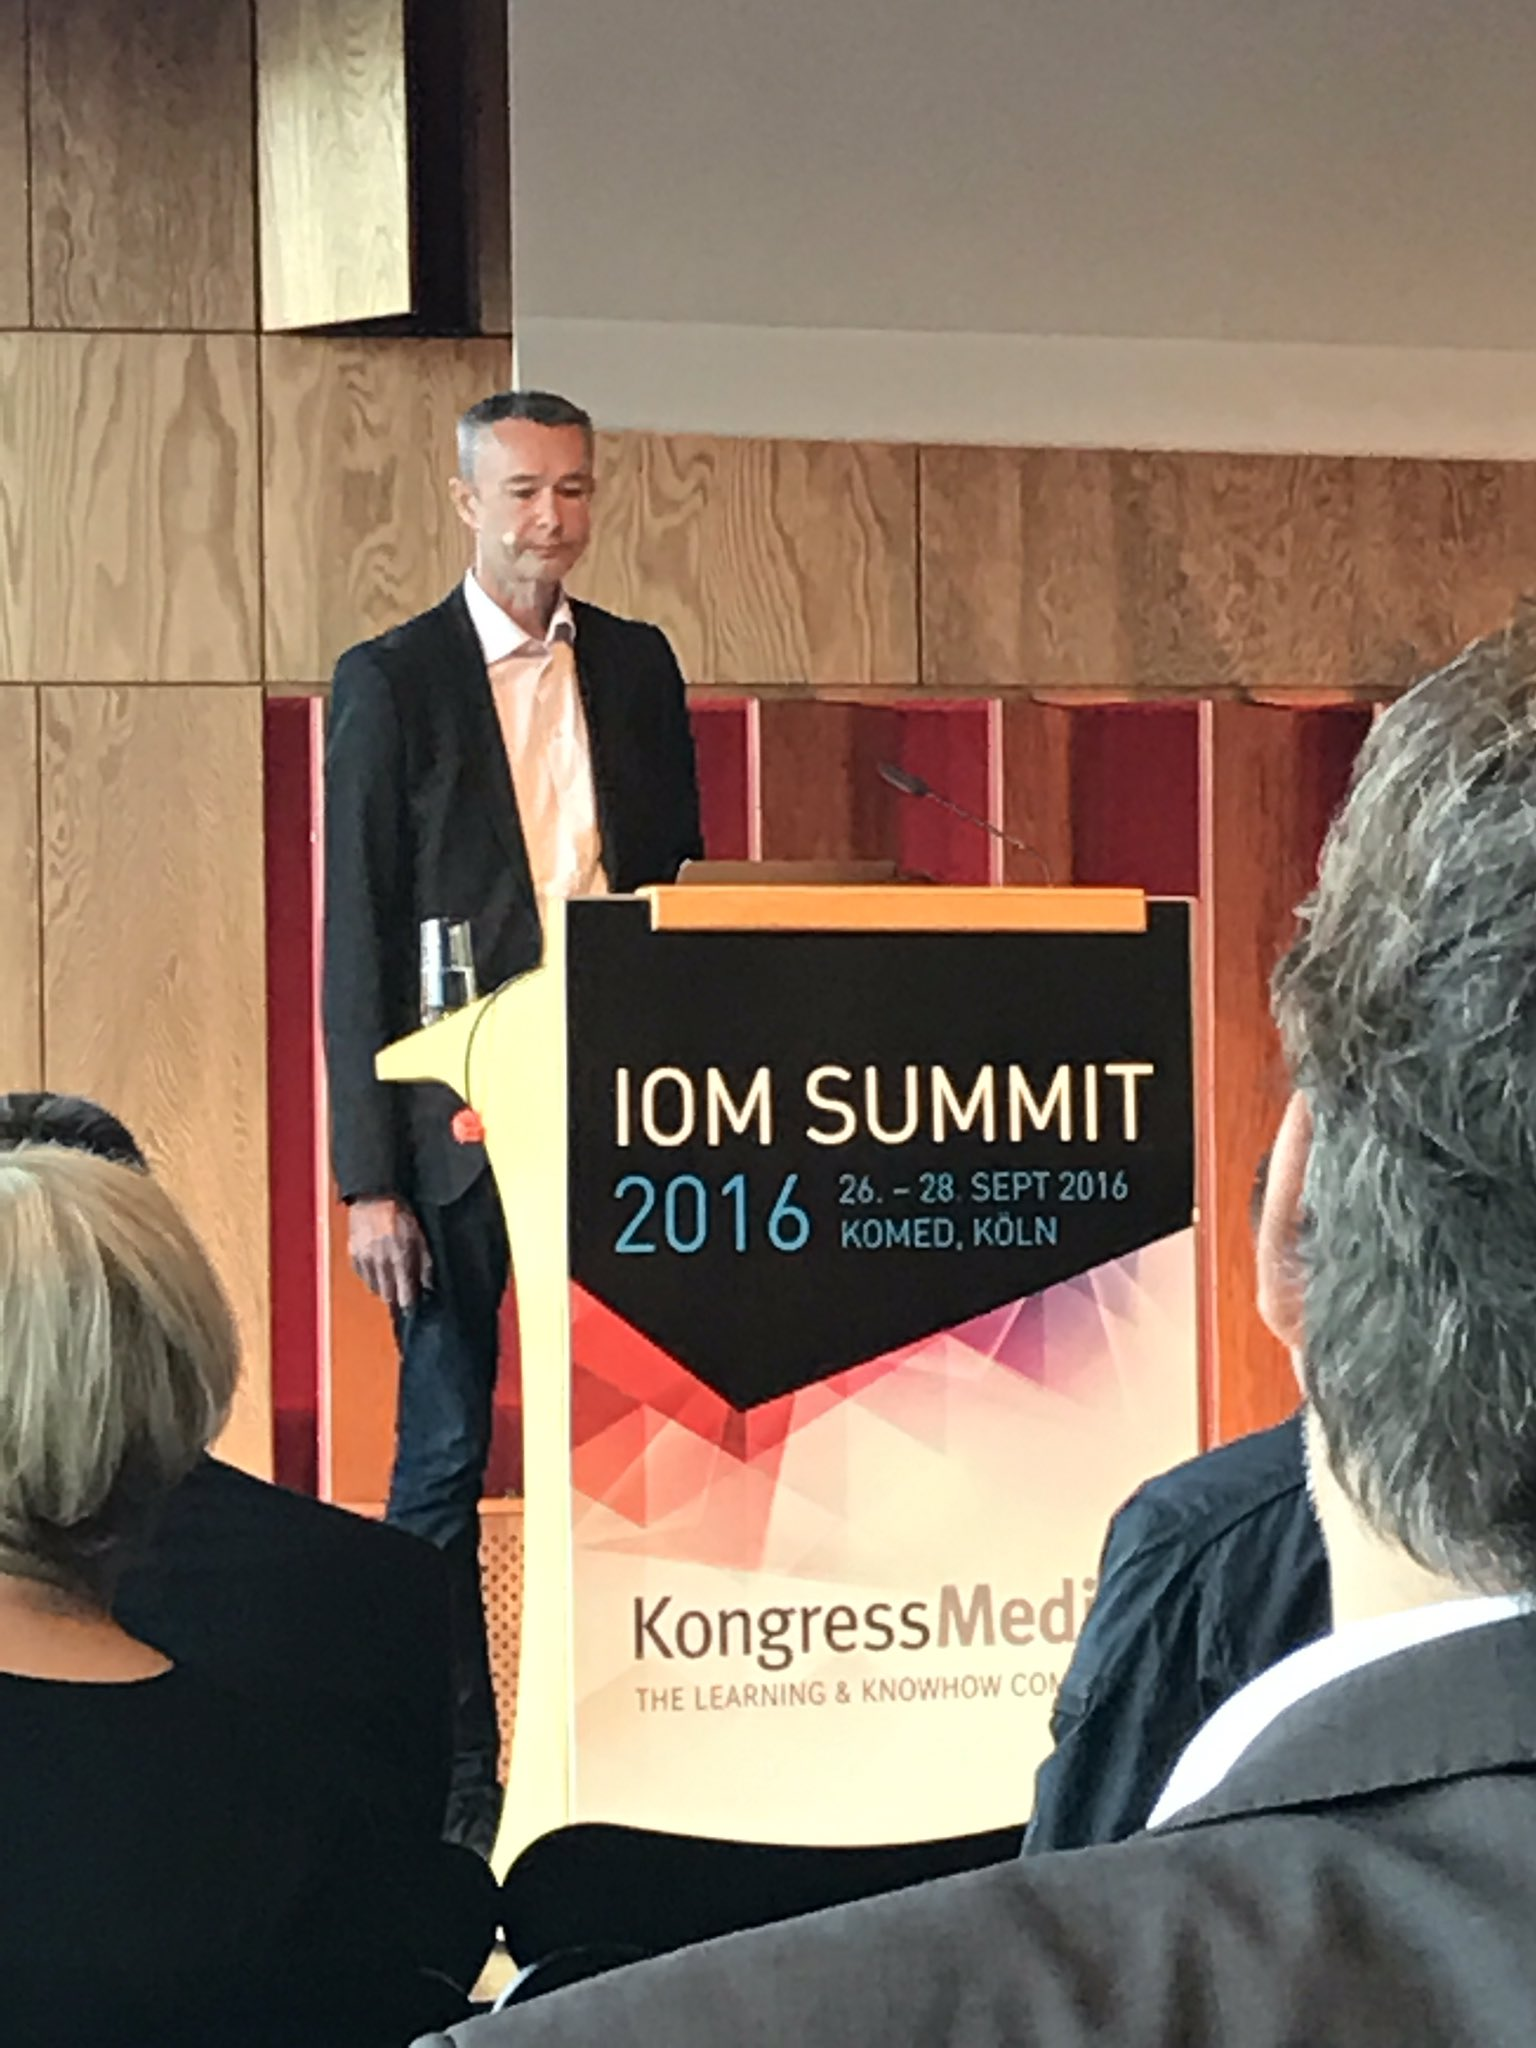 Now on stage: @leebryant differs the operating system of #SocialBusiness from the operating model #ioms16 https://t.co/nZPD7dZtGG